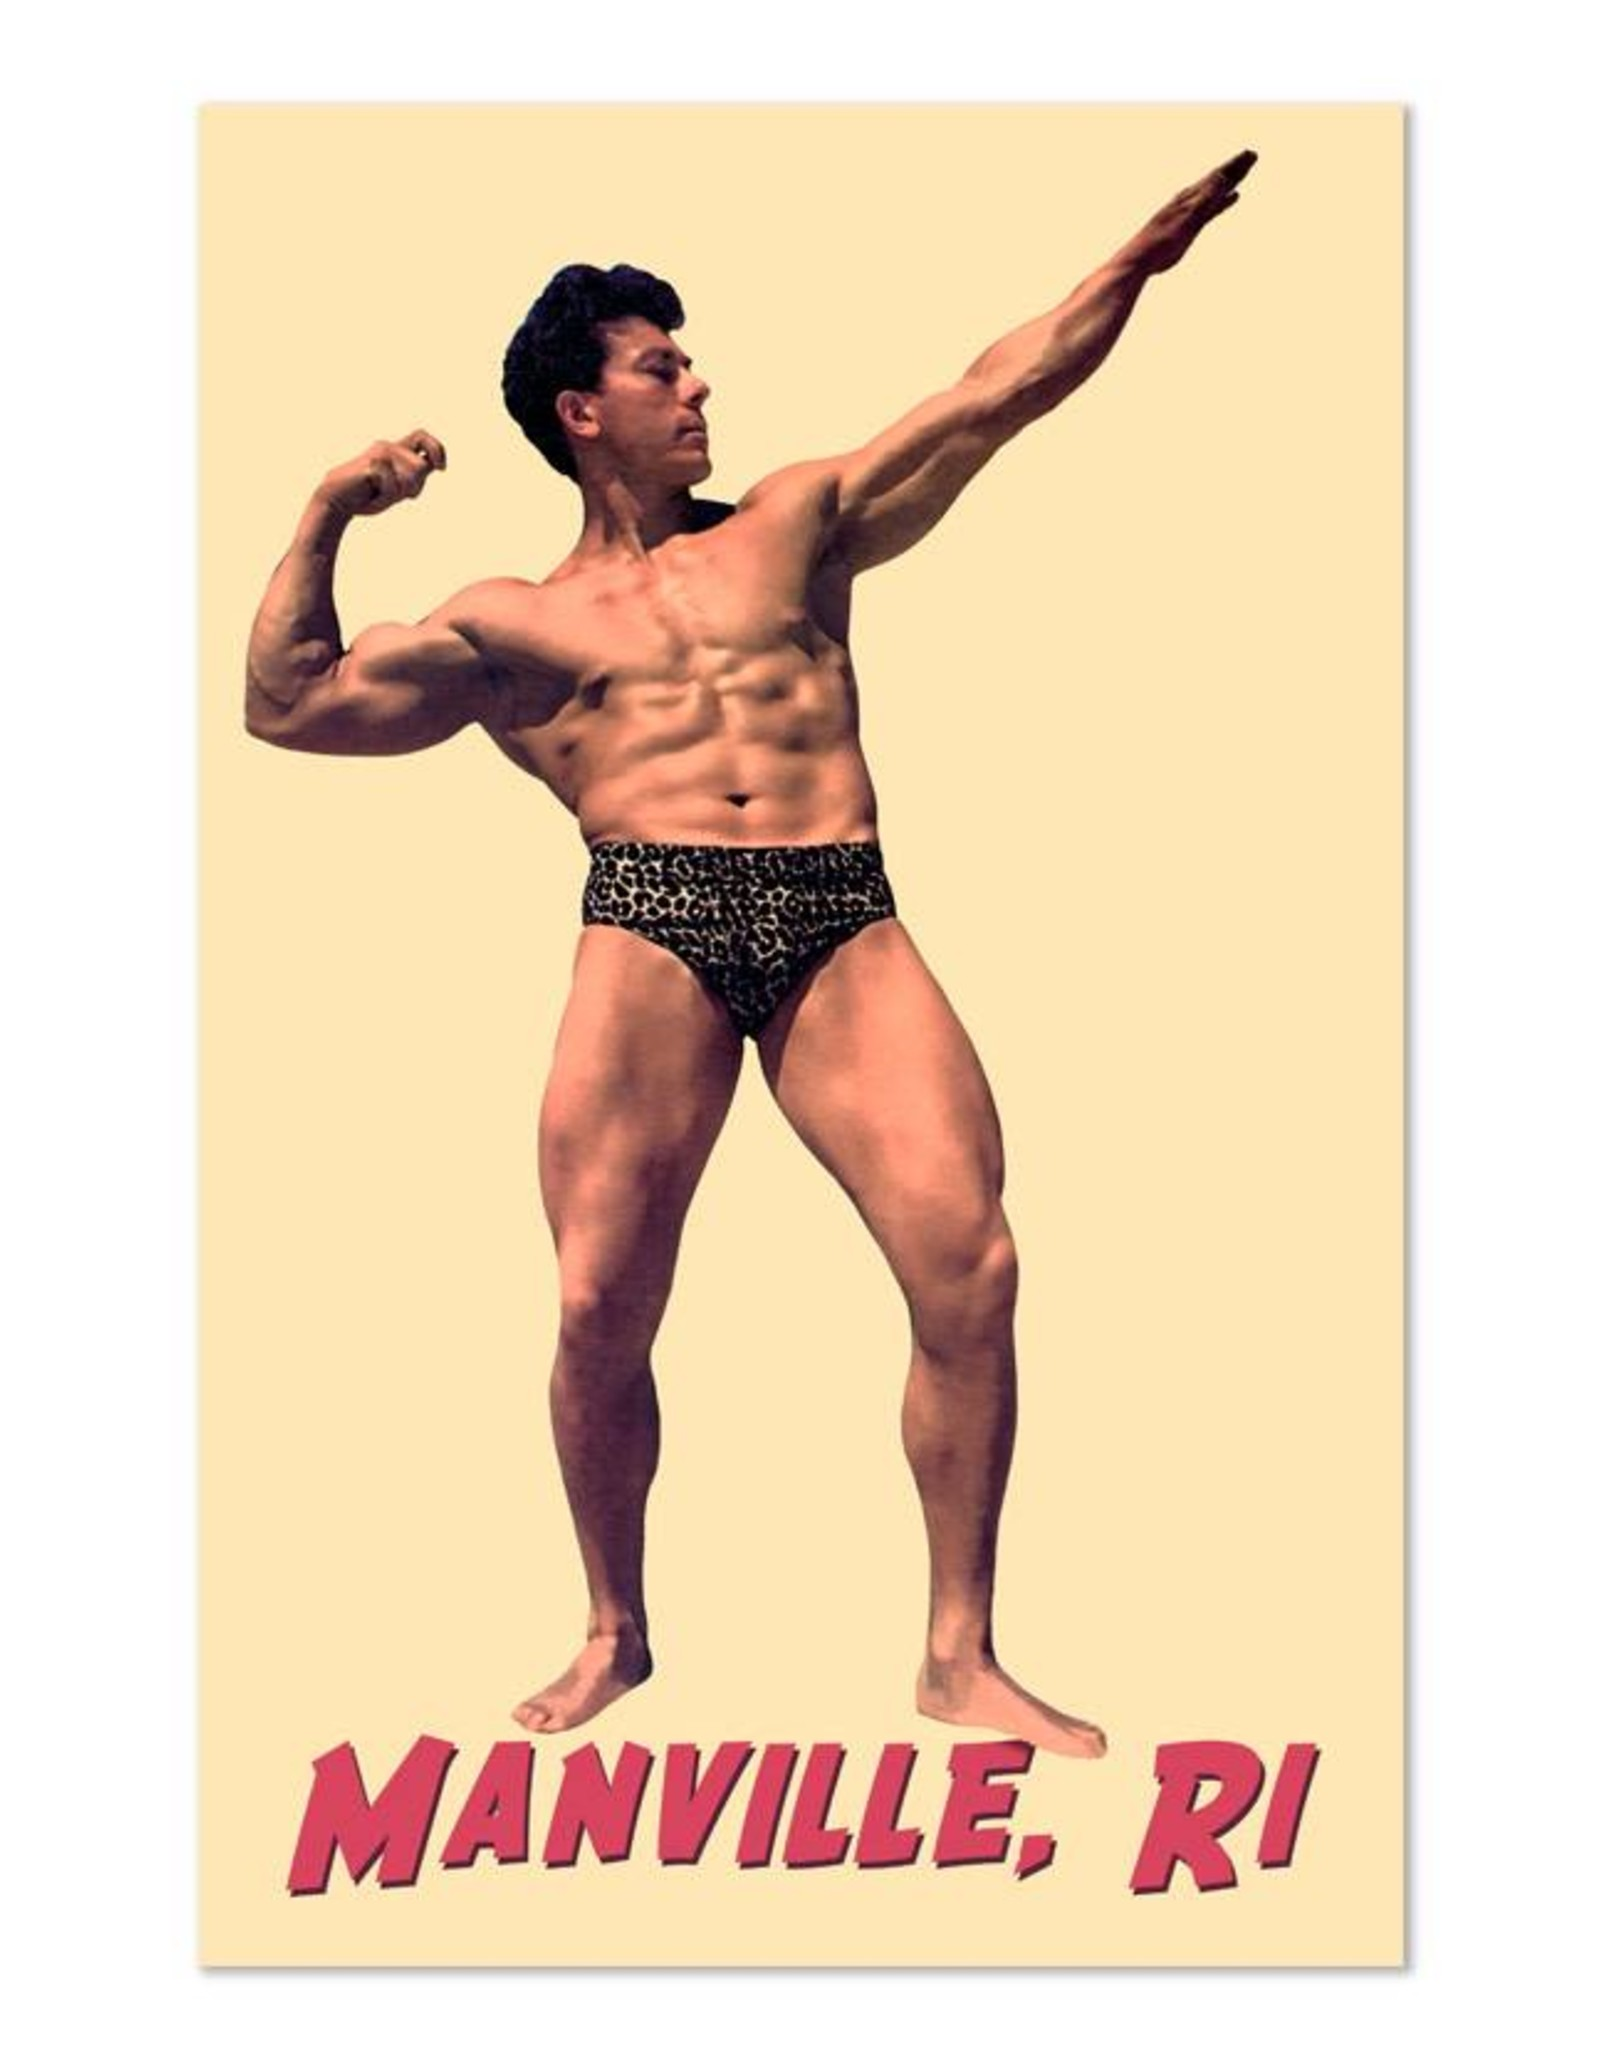 The Manville Bodybuilder Magnet